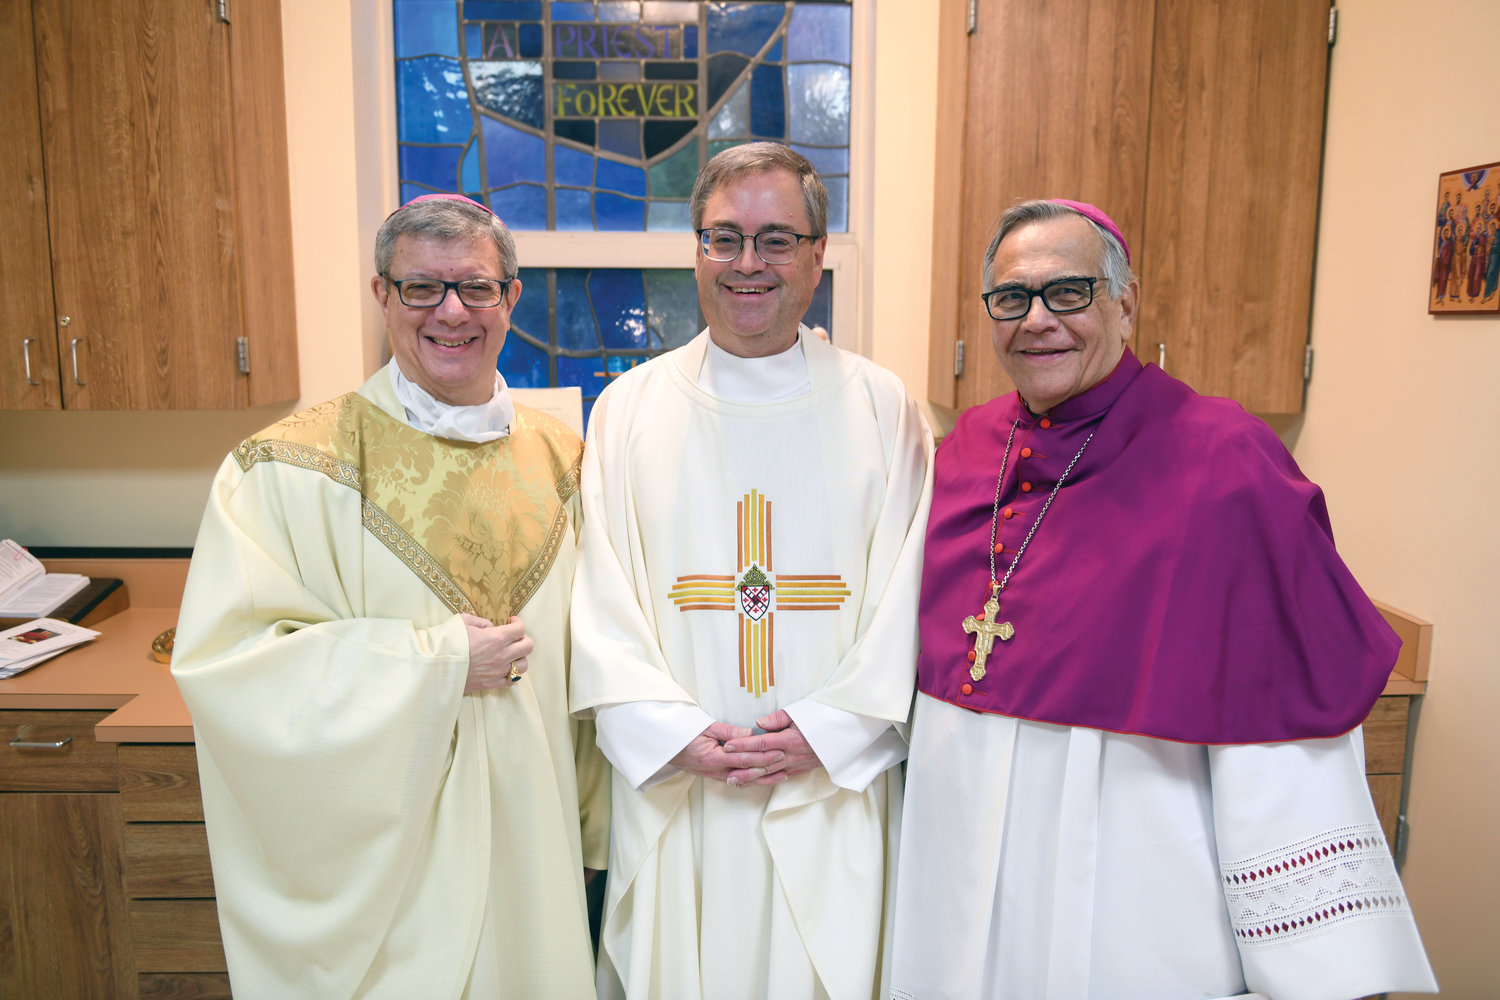 Auxiliary Bishop Gerardo Colacicco, a former pastor of St. Columba, Hopewell Junction, Father Michael McLoughlin, the current pastor, and retired Auxiliary Bishop Dominick Lagonegro, also a former pastor of the parish, gather in the sacristy before the Jan. 5 Mass of Thanksgiving Bishop Colacicco celebrated at St. Columba Church.